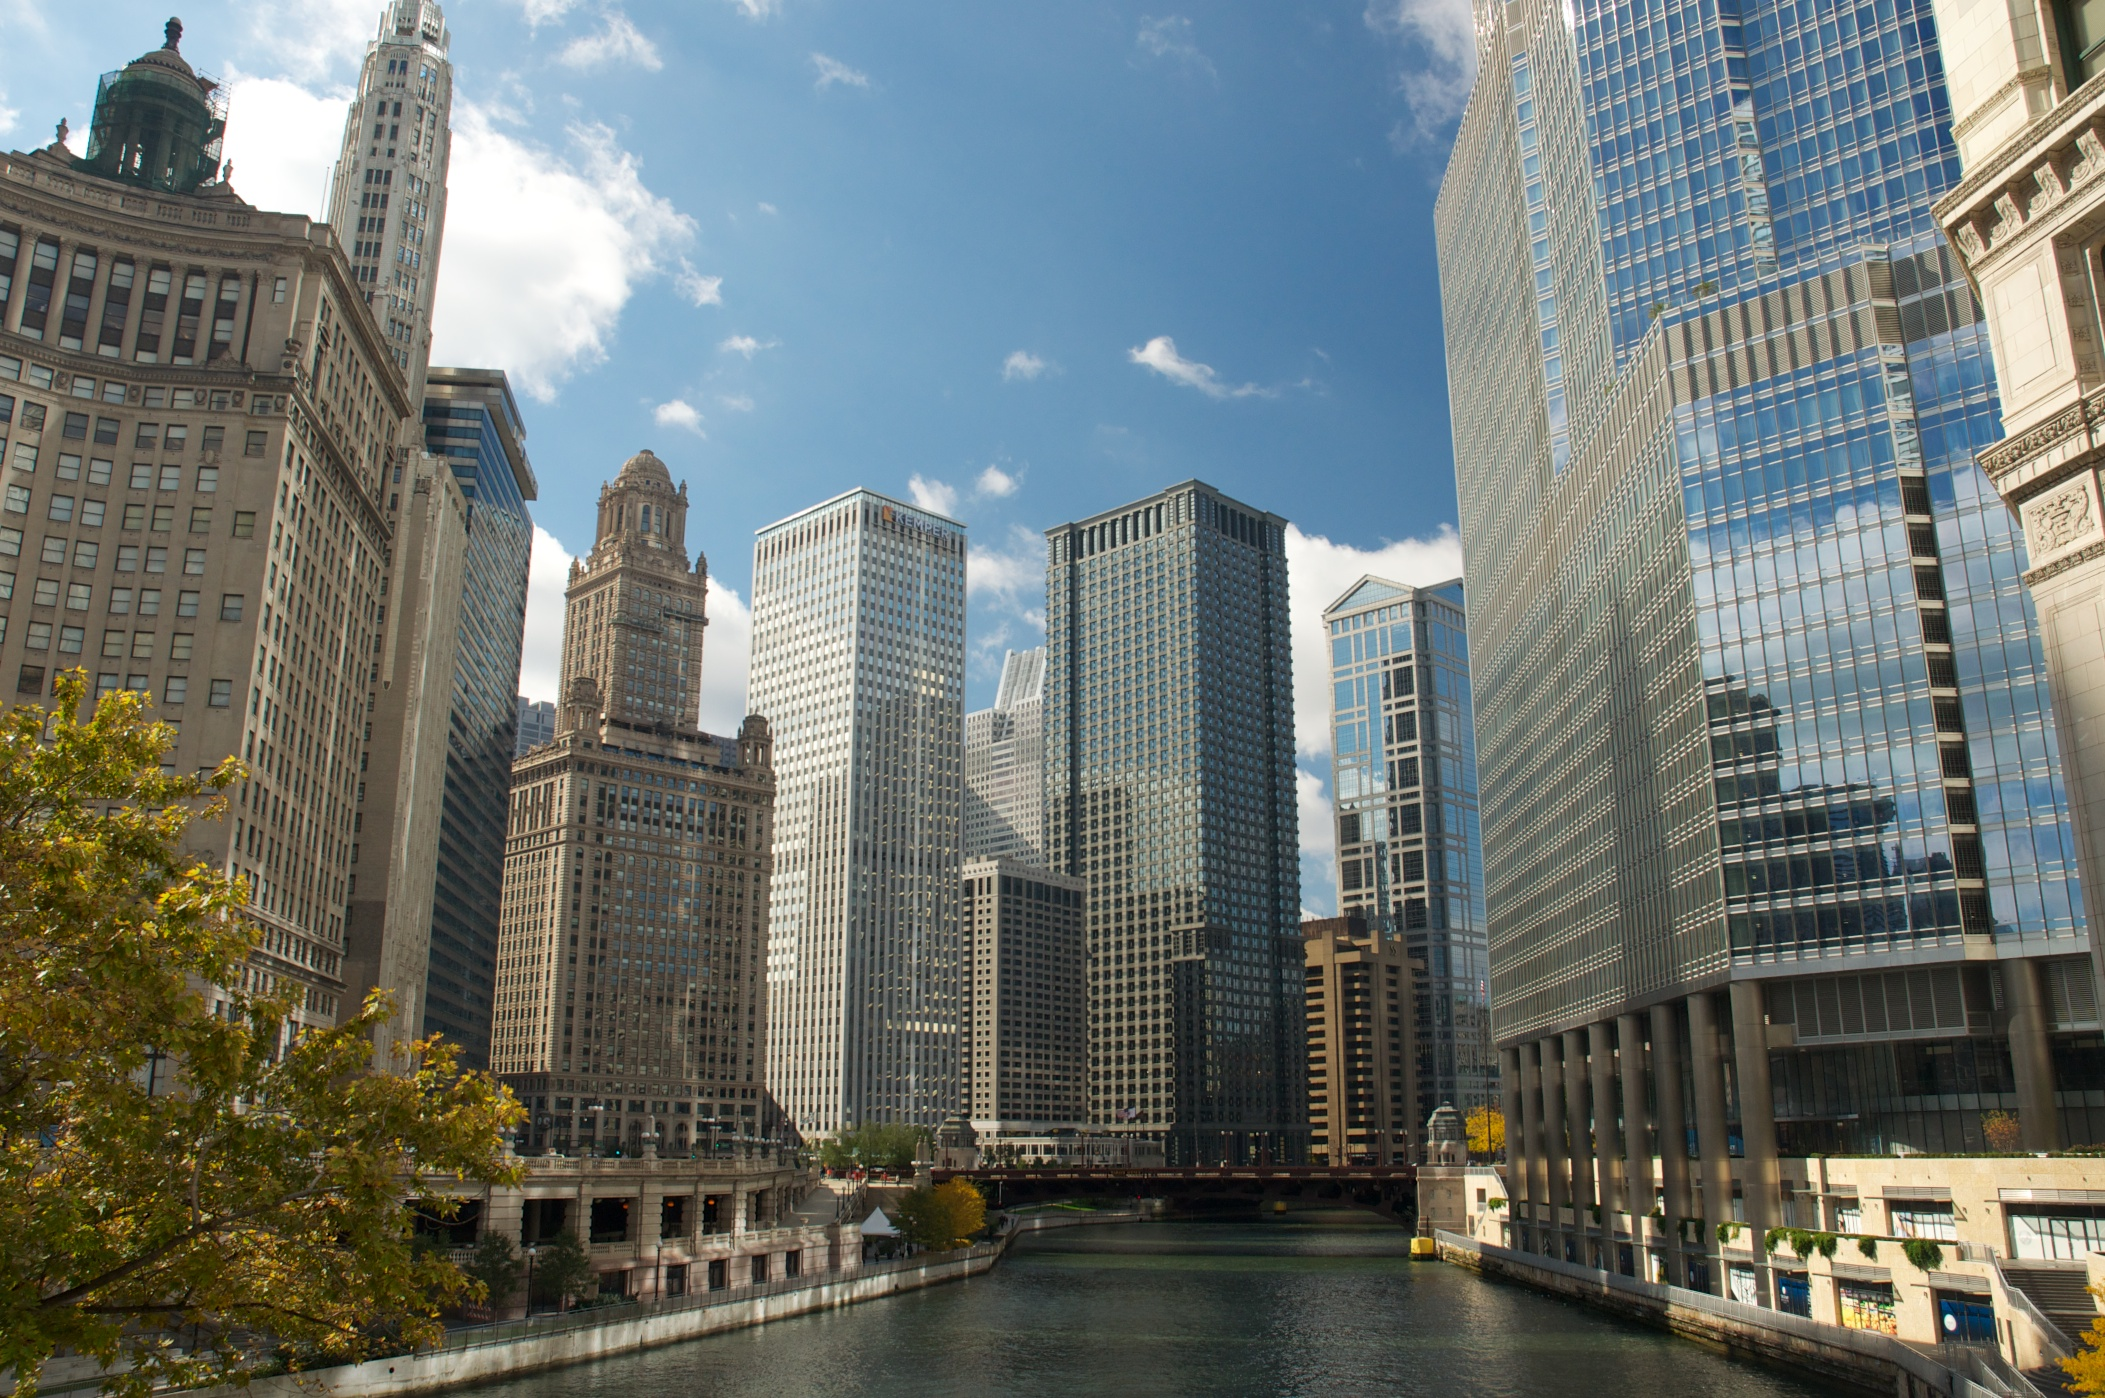 The Chicago River and Architecture